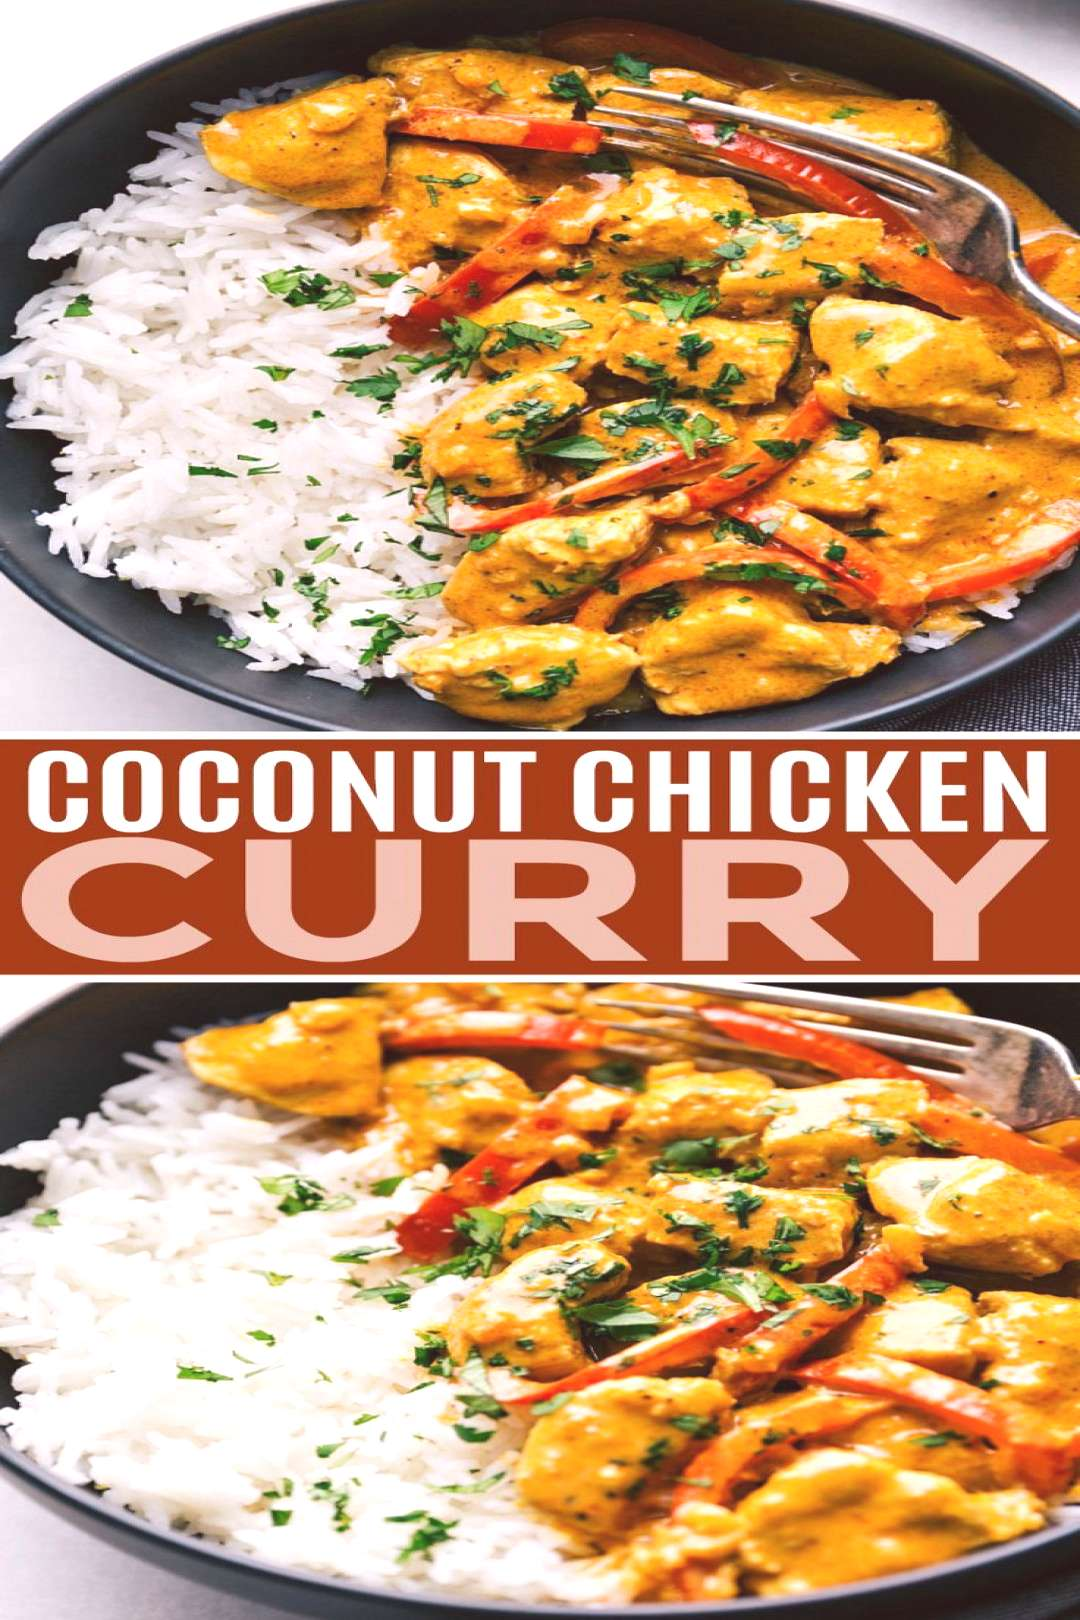 Coconut Curry Chicken 30 Minutes!   Chelseas Messy Apron This coconut chicken curry can be made